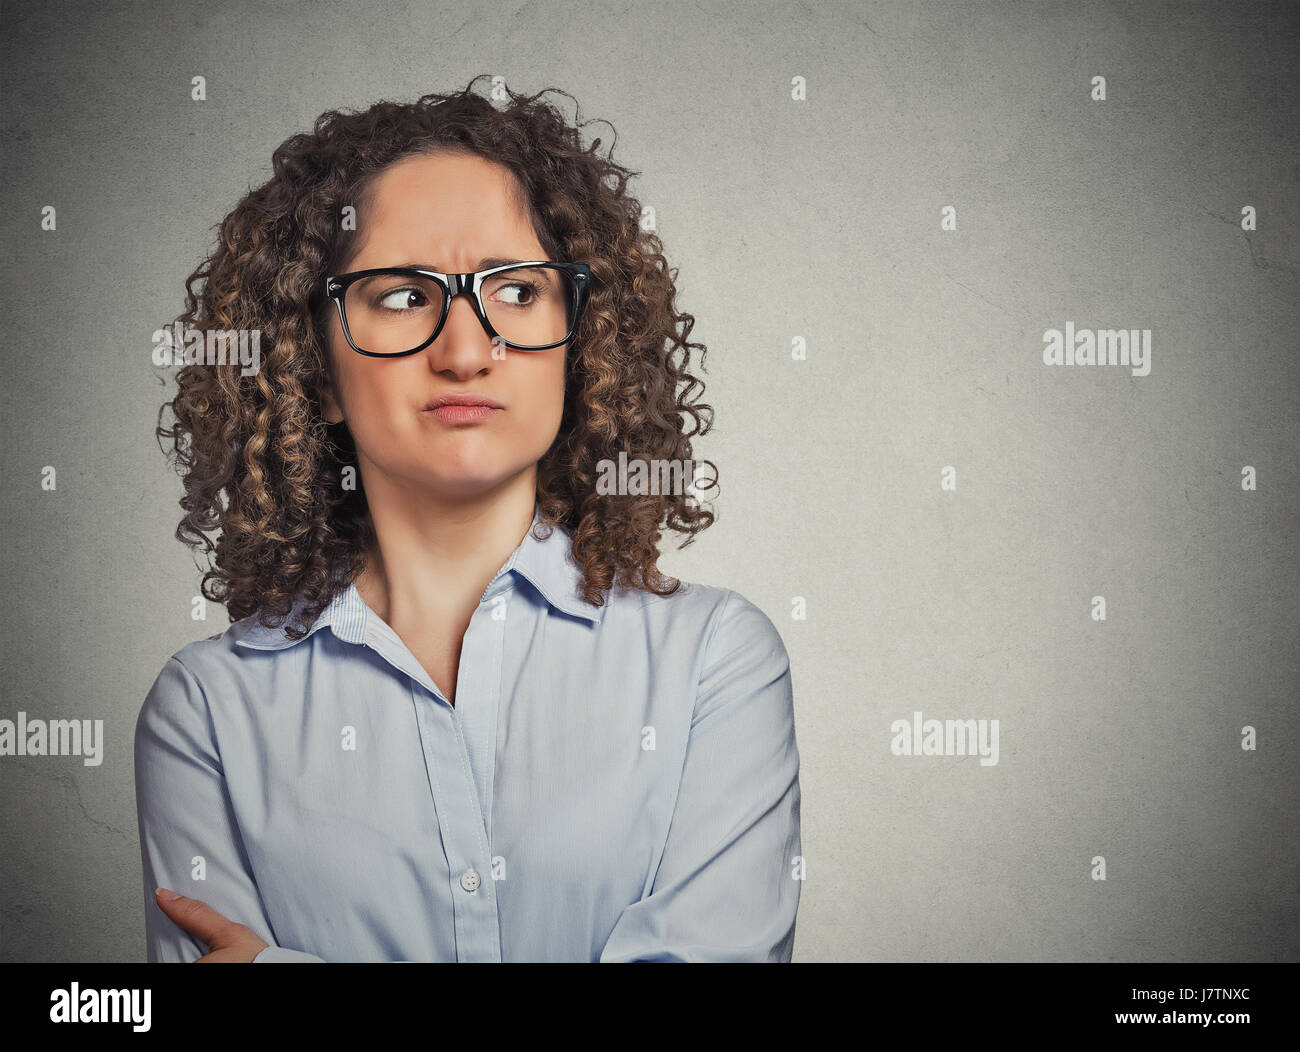 Displeased suspicious young woman with glasses looking sideways isolated on grey wall background. Negative face - Stock Image